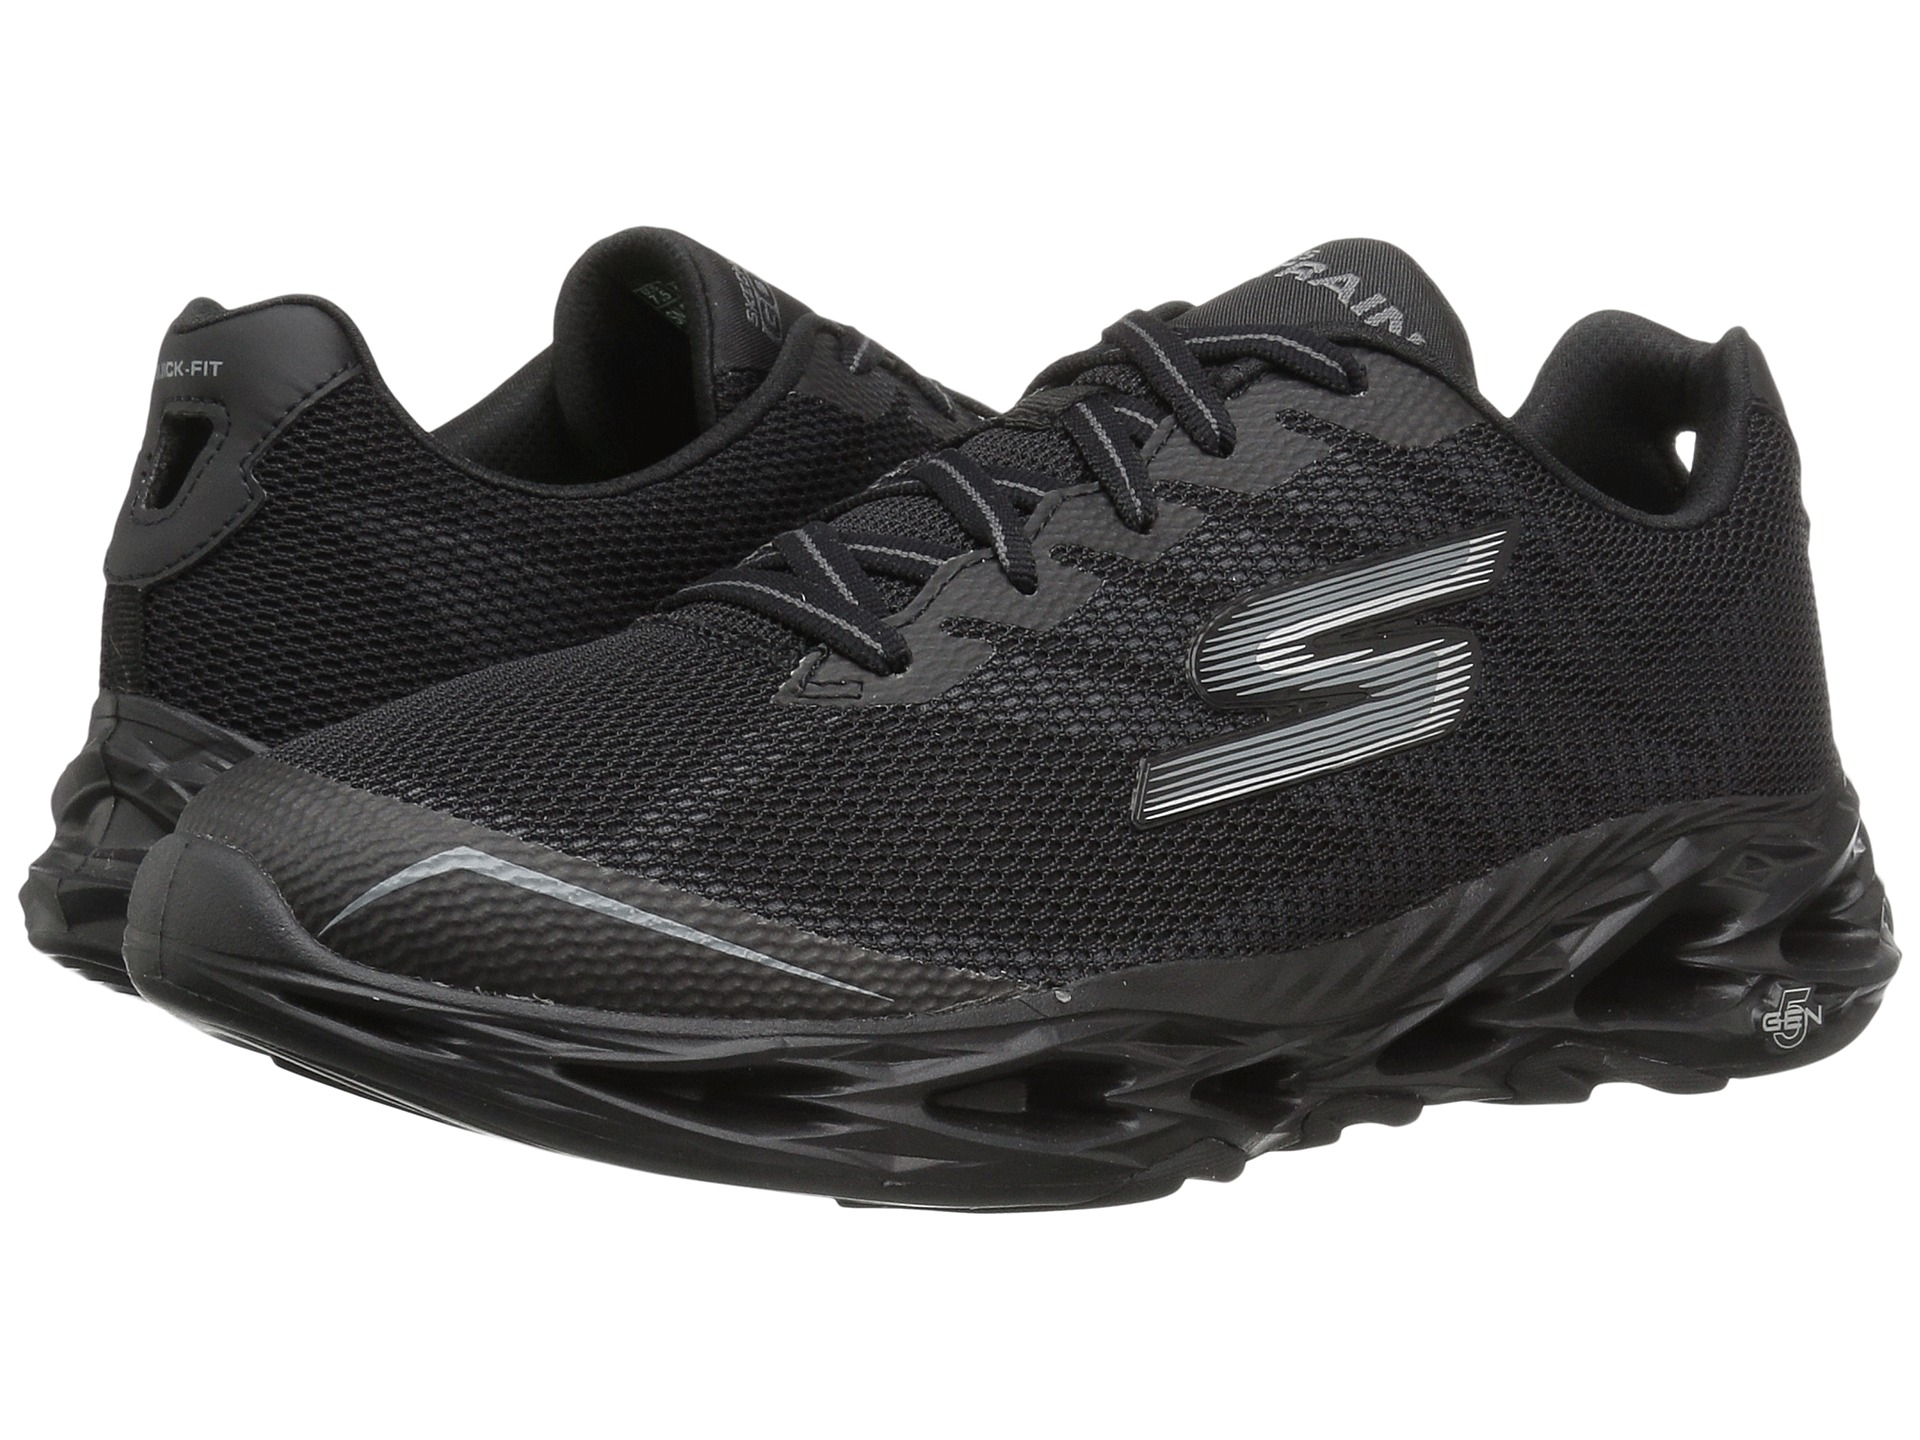 View More Like This SKECHERS Performance Go Train Vortex 2